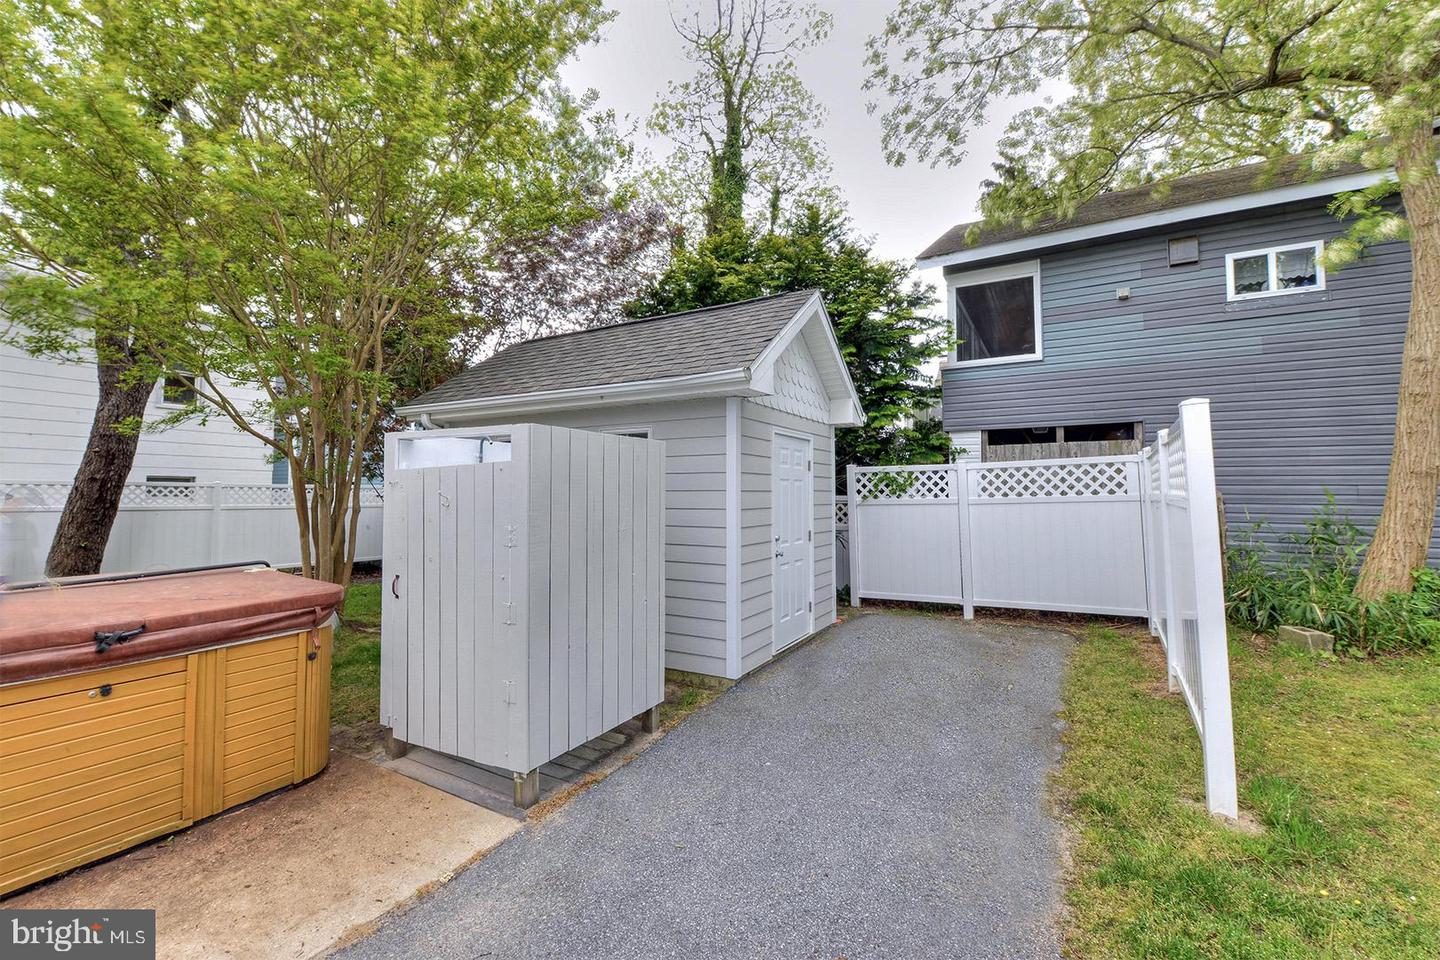 DESU139874-301711164660-2019-05-16-07-32-35 10 New Castle St | Rehoboth Beach, DE Real Estate For Sale | MLS# Desu139874  - Rehoboth Beach Real Estate - Bryce Lingo and Shaun Tull REALTORS, Rehoboth Beach, Delaware